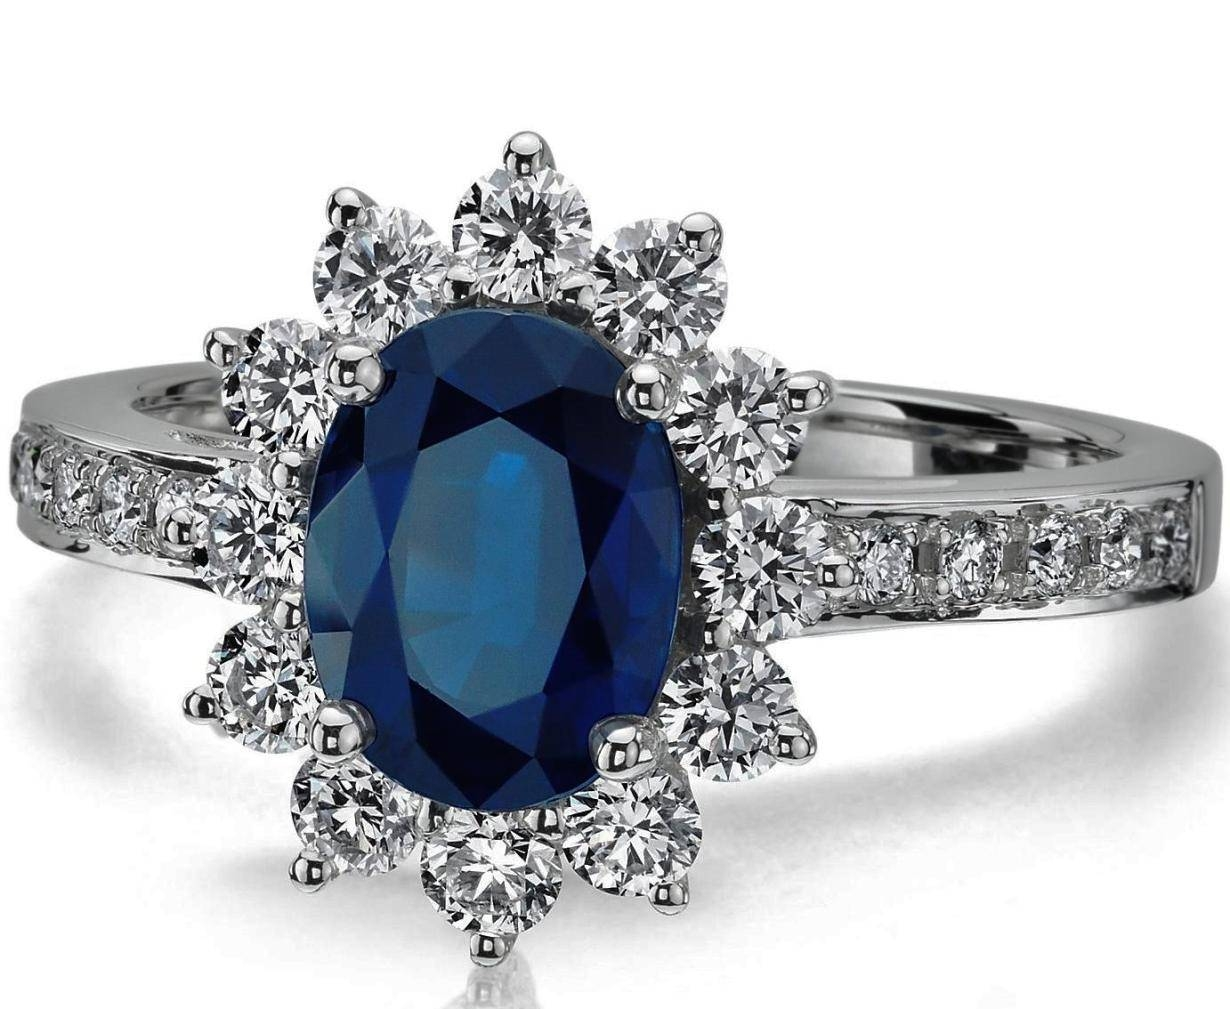 Engagement Rings : Gemstone Rings Stunning Engagement Rings Blue Inside Wedding Rings With Diamonds And Sapphires (View 9 of 15)